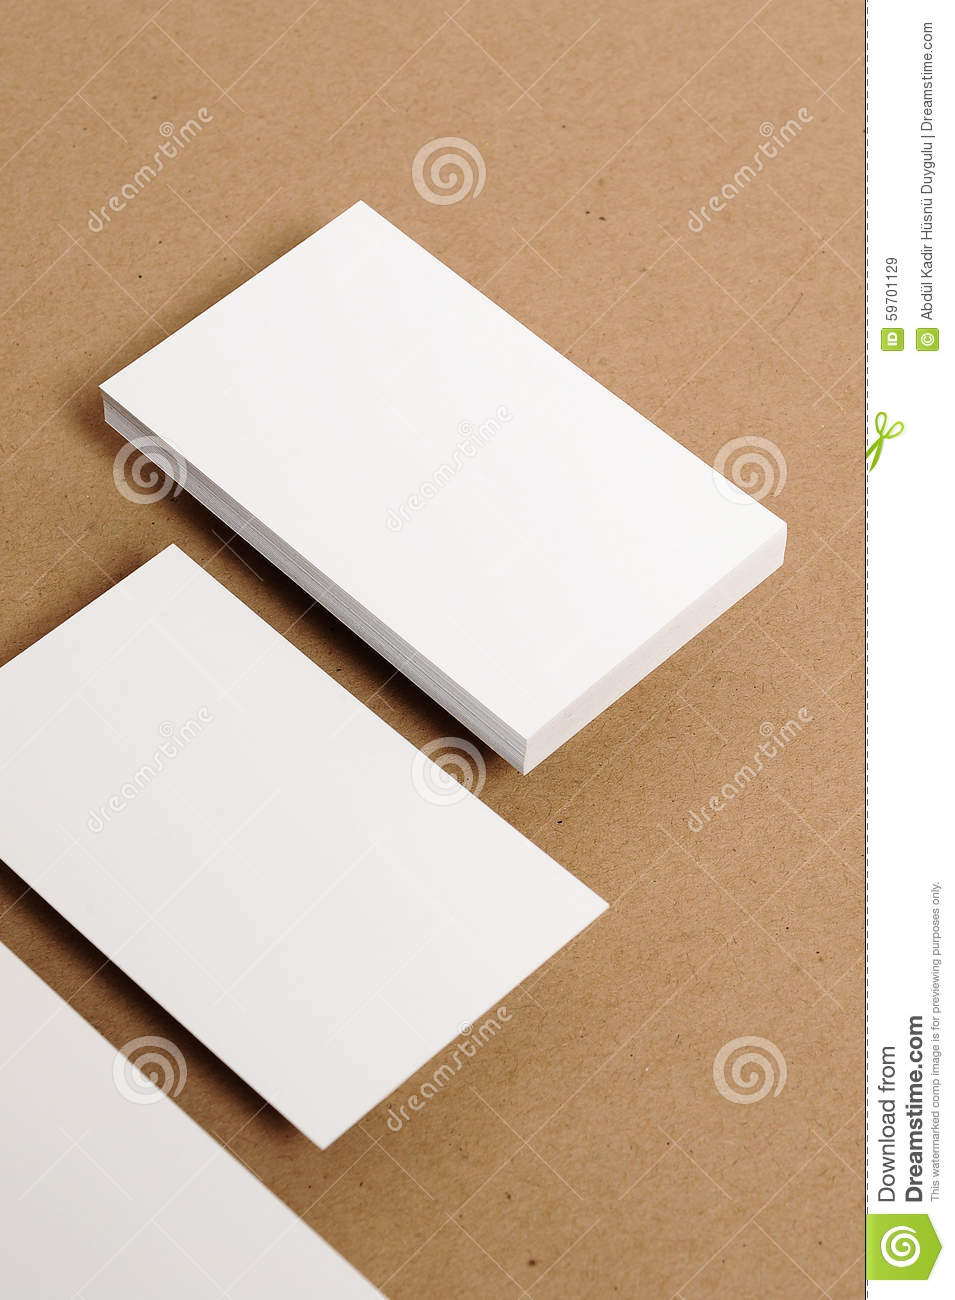 business card paper stock - Military.bralicious.co